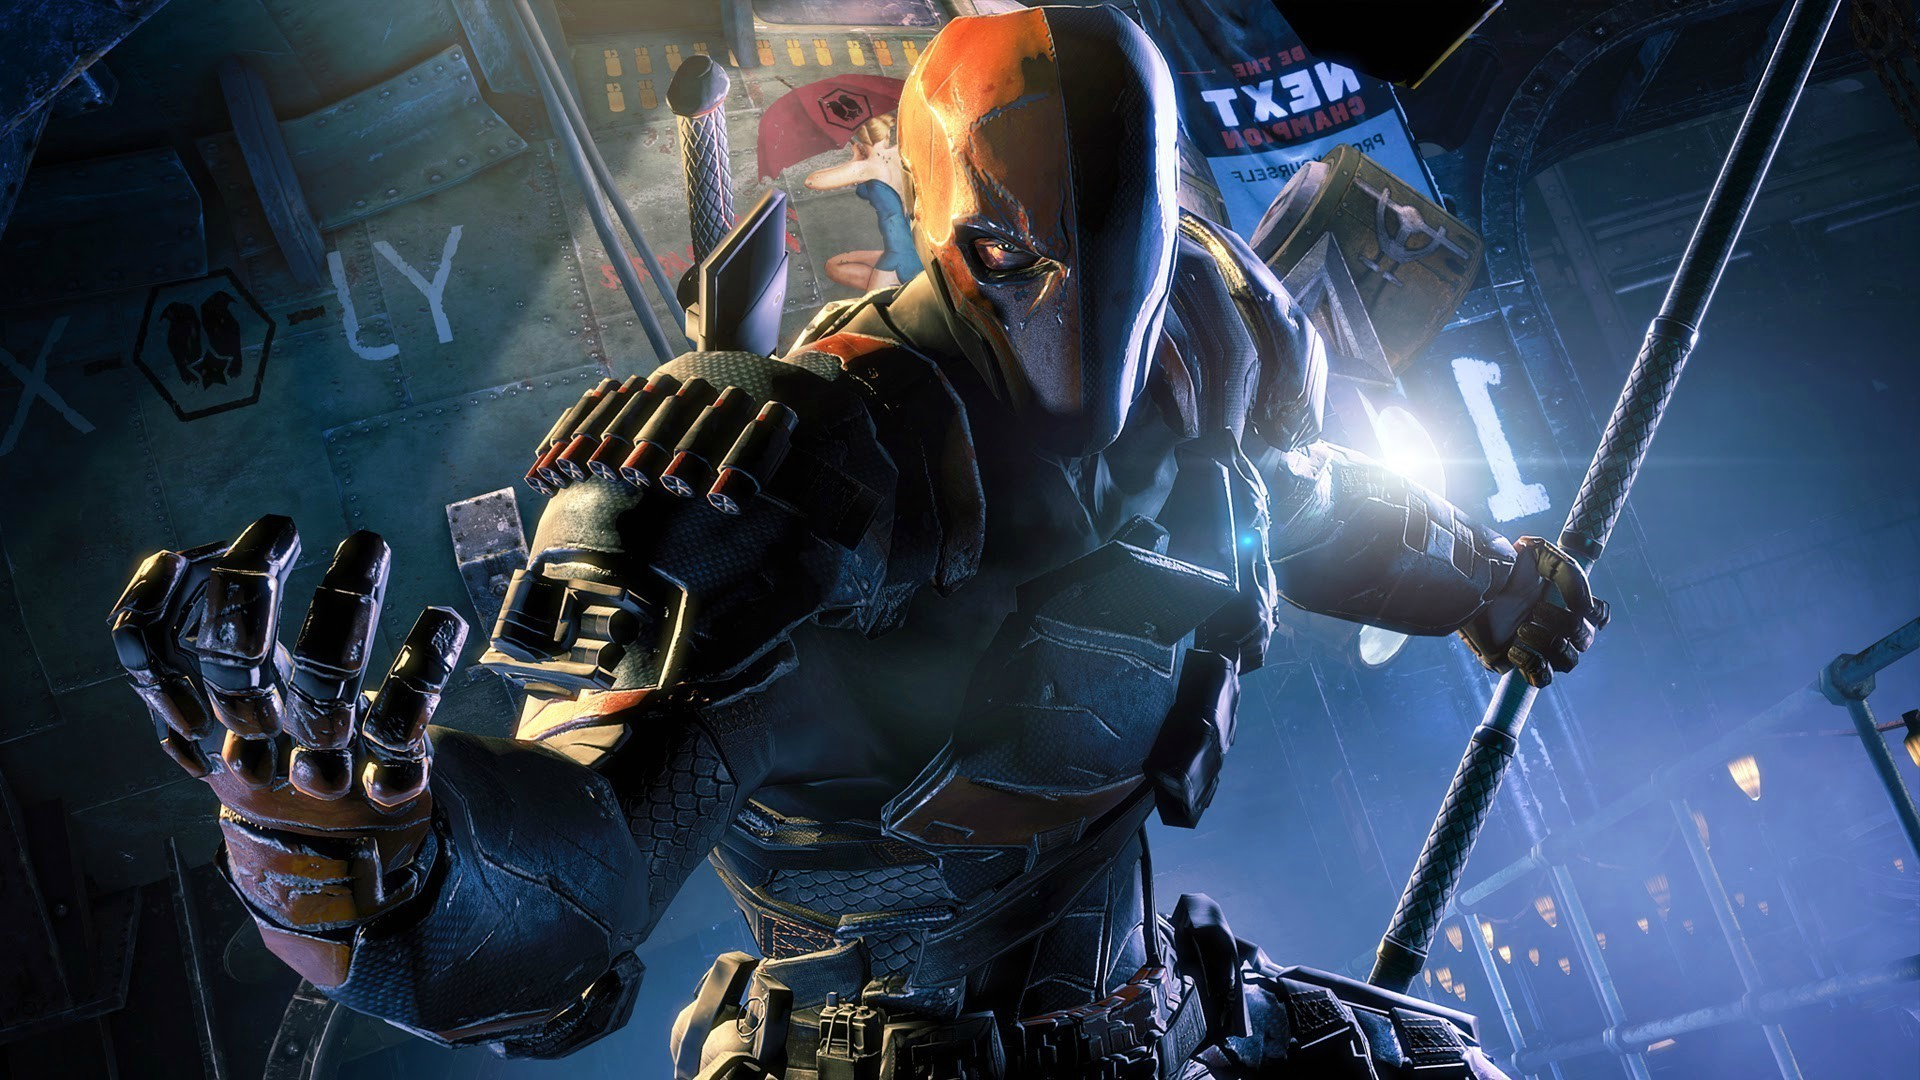 1920x1080 Deathstroke Arkham Origins Wallpaper Photo ...